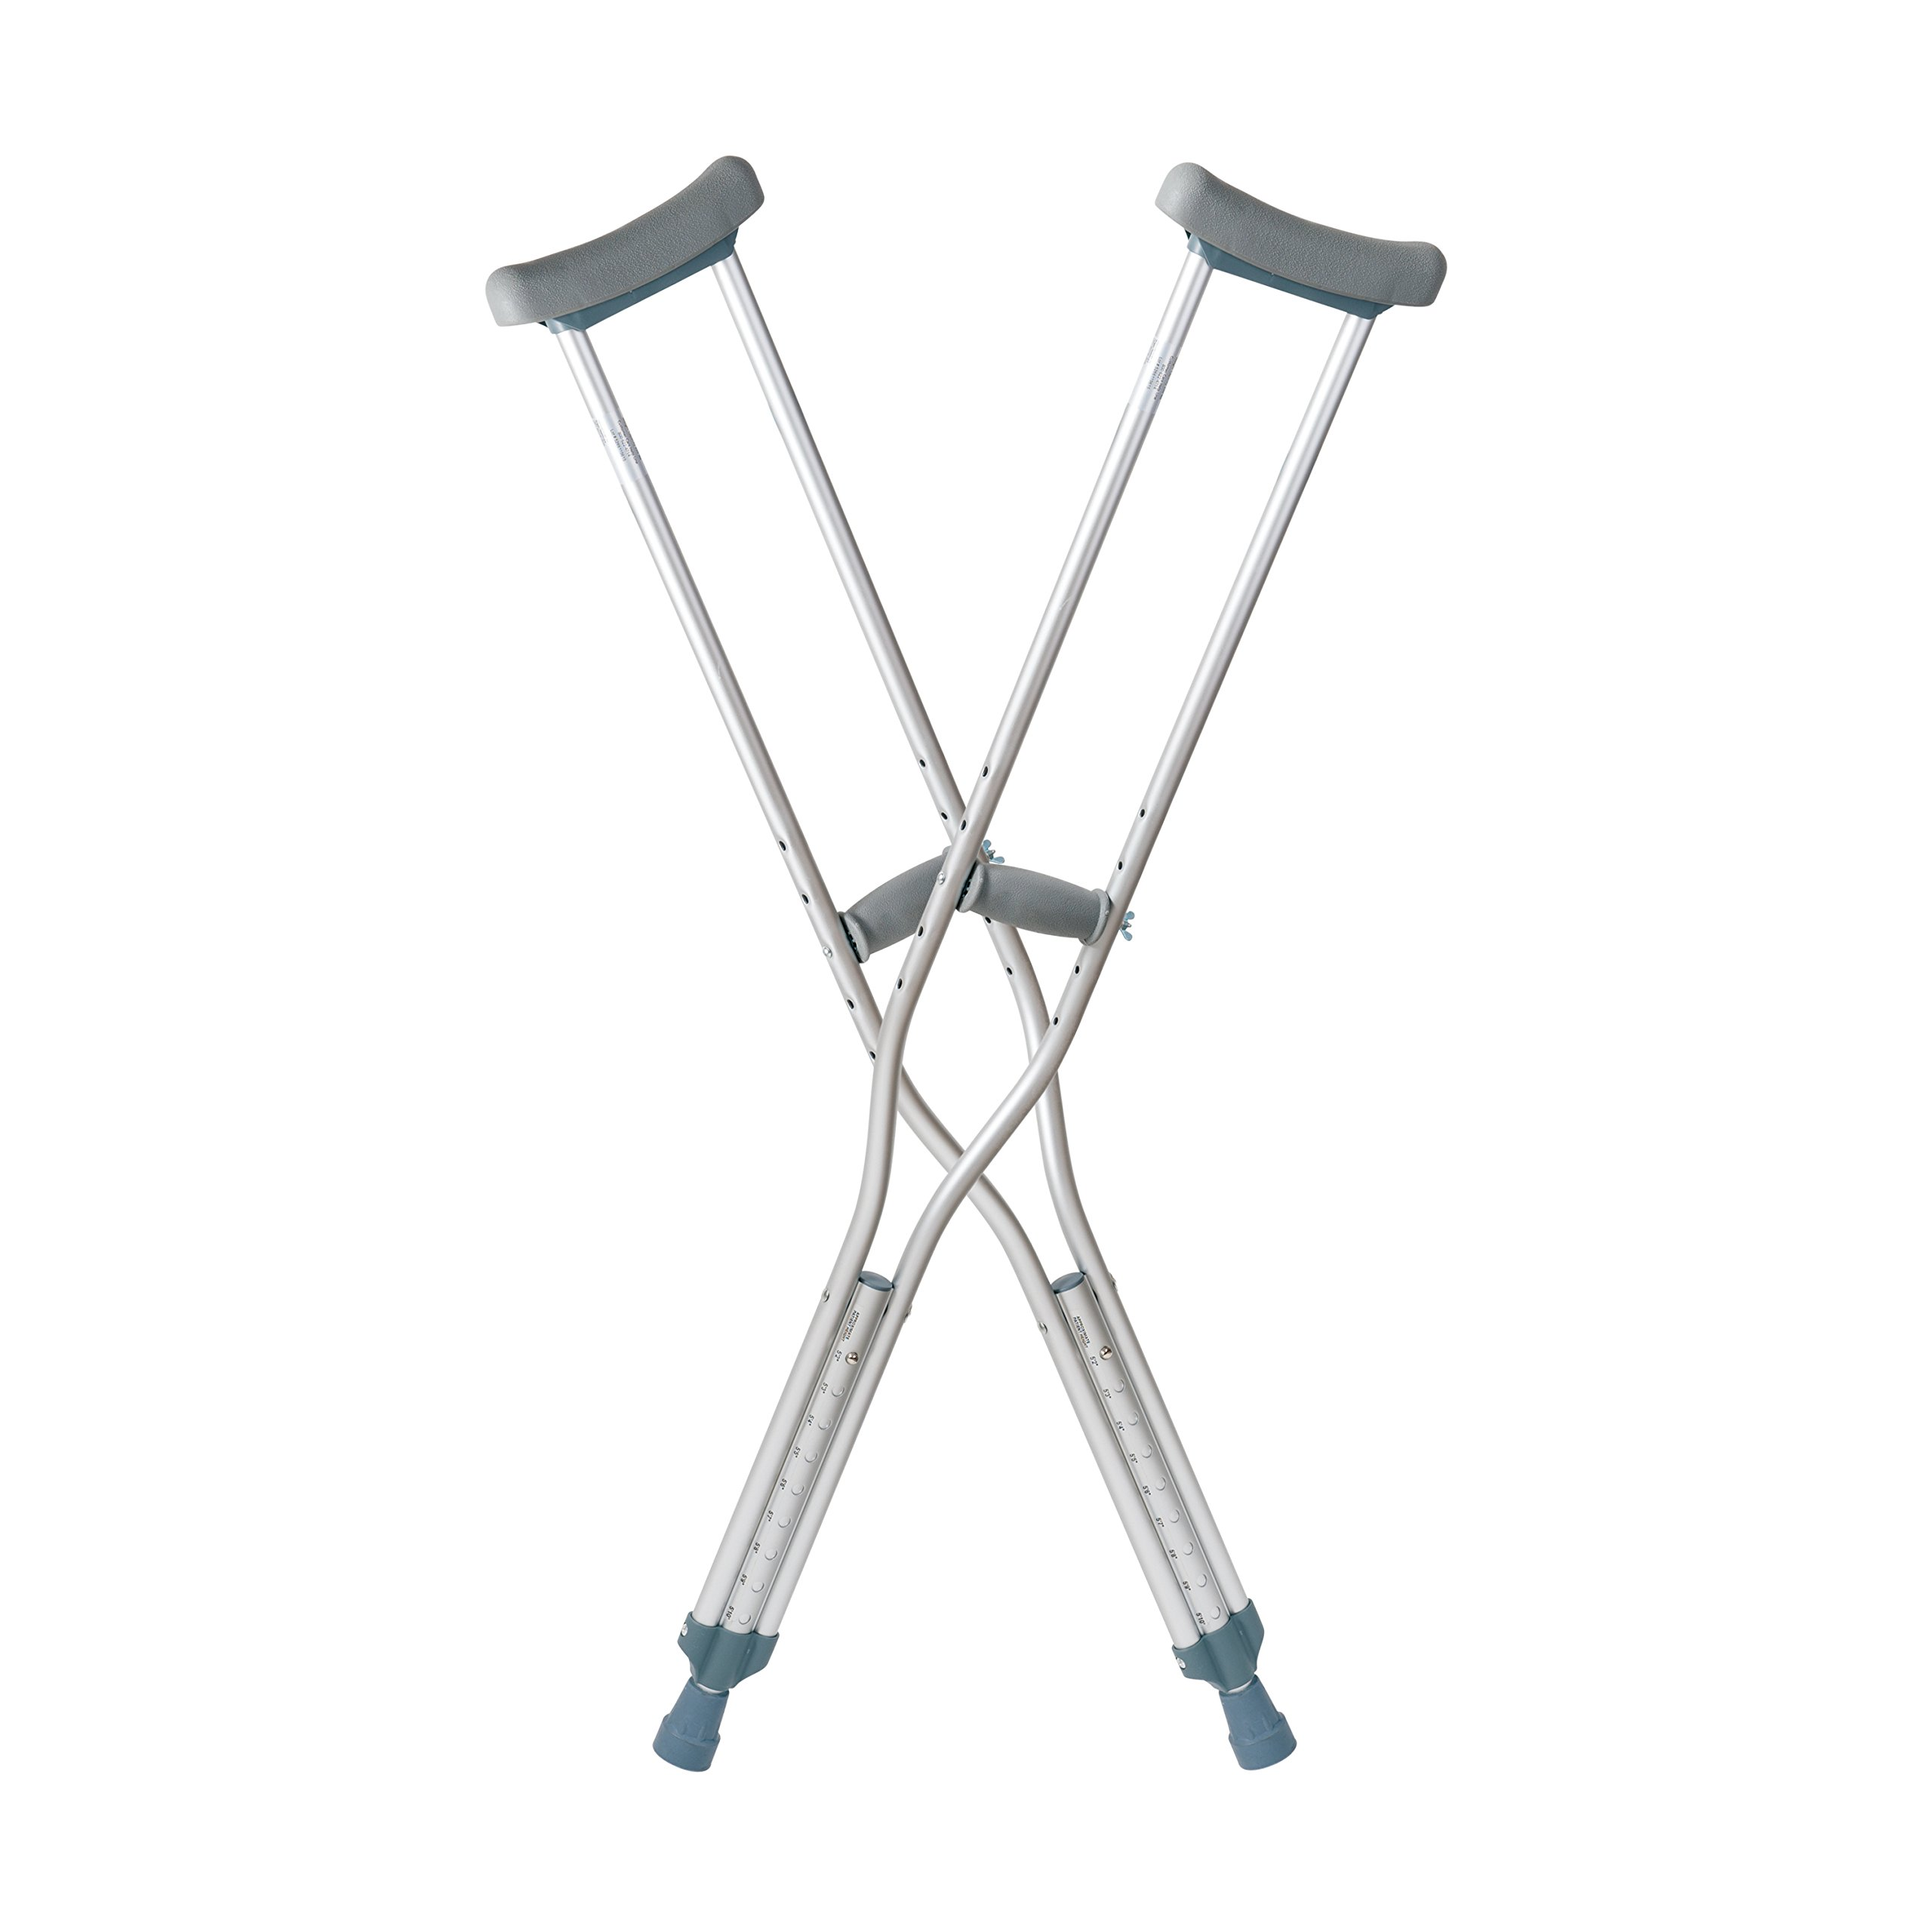 DMI Crutches, Push Button Adjustable Crutches, Aluminum Crutches with Pads, Tips, and Handgrips Accessories, Adult 5 Foot 2 to 5 Foot 10, Silver and Gray by DMI